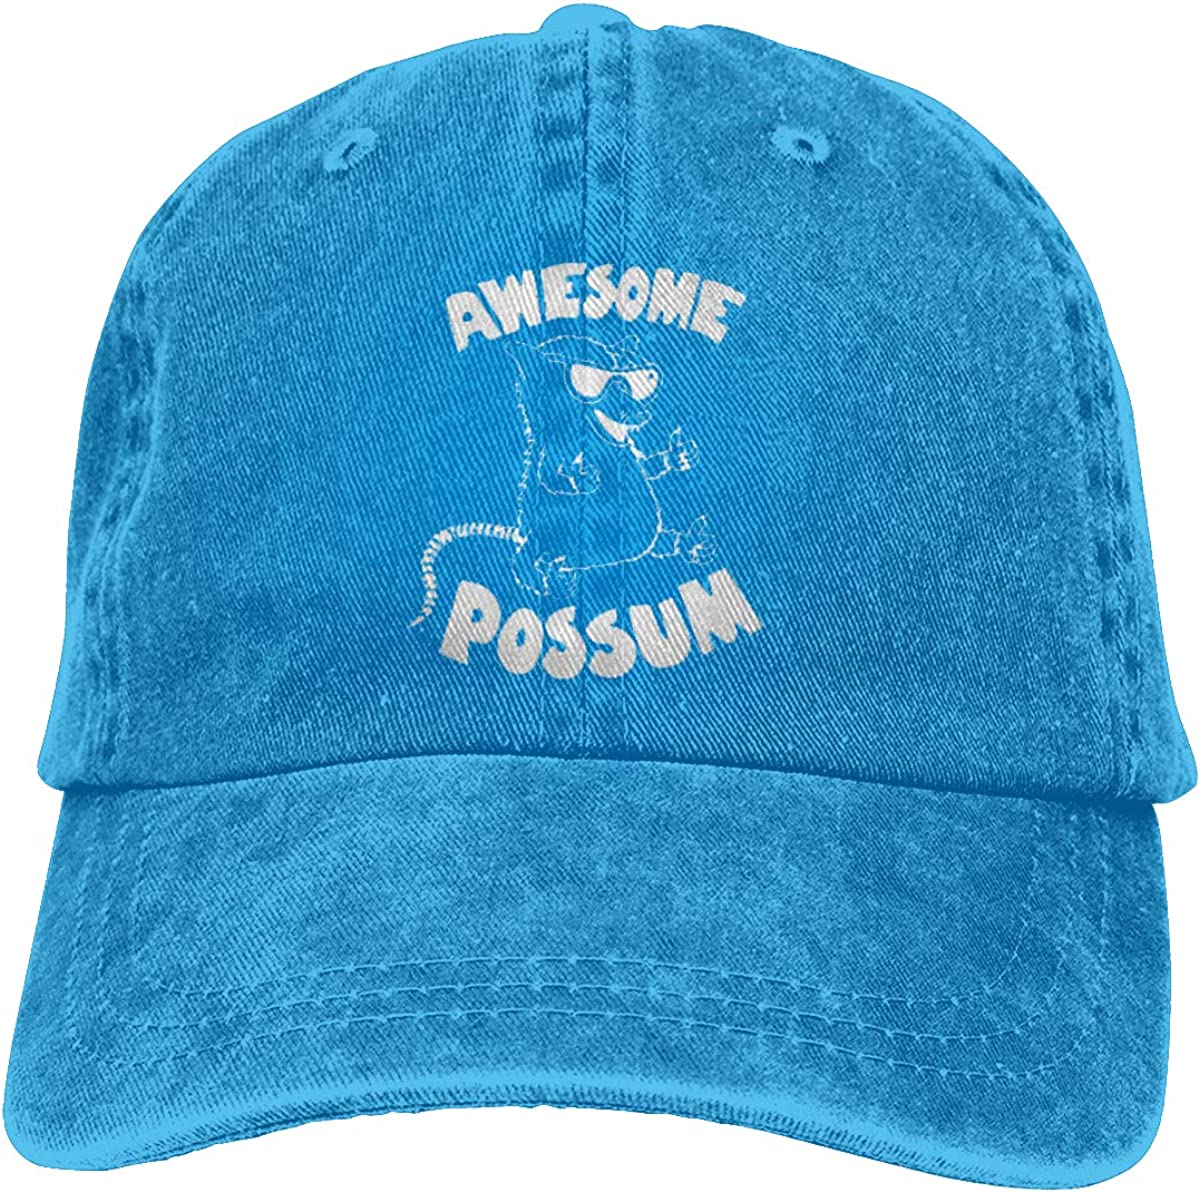 Awesome Possum Unisex Baseball Cap Cotton Denim Cool Adjustable Sun Hat for Men Women Youth